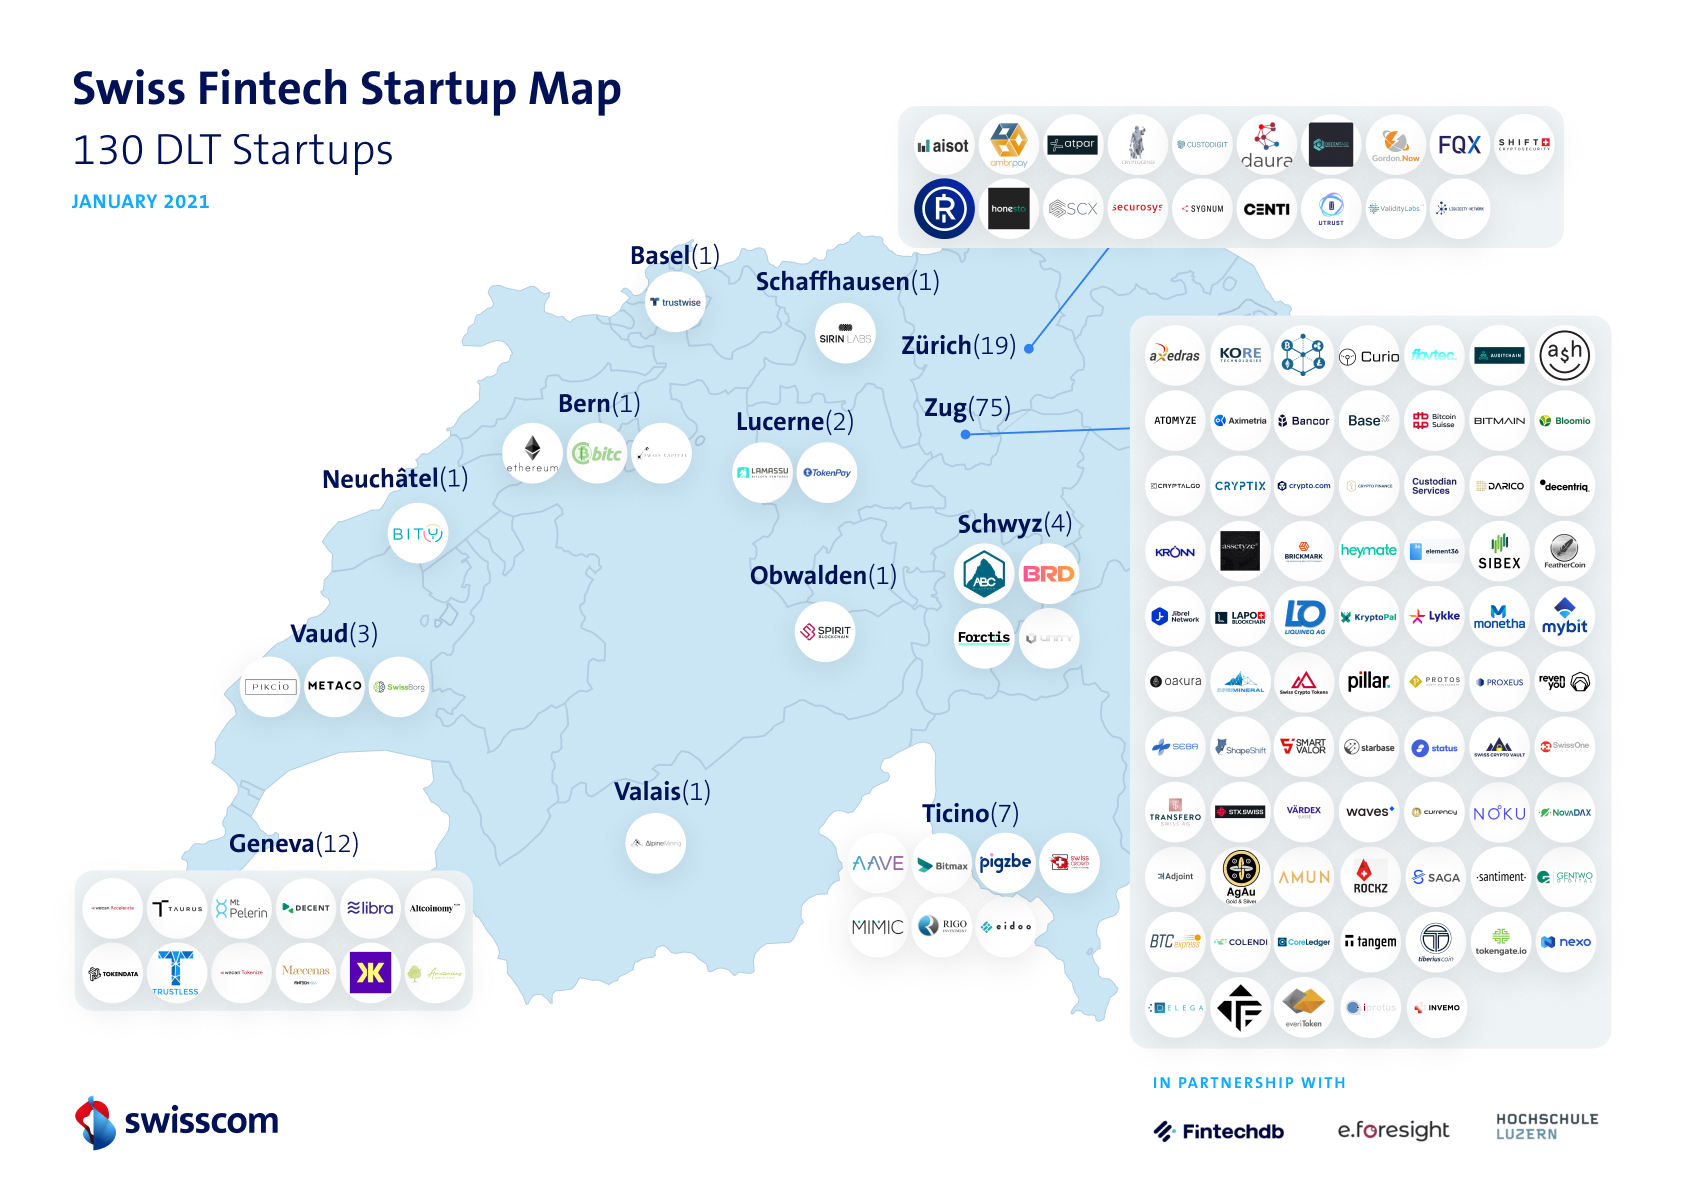 Swiss DLT startups geographical distribution, Swiss Fintech Startup Map, Swisscom, January 2021